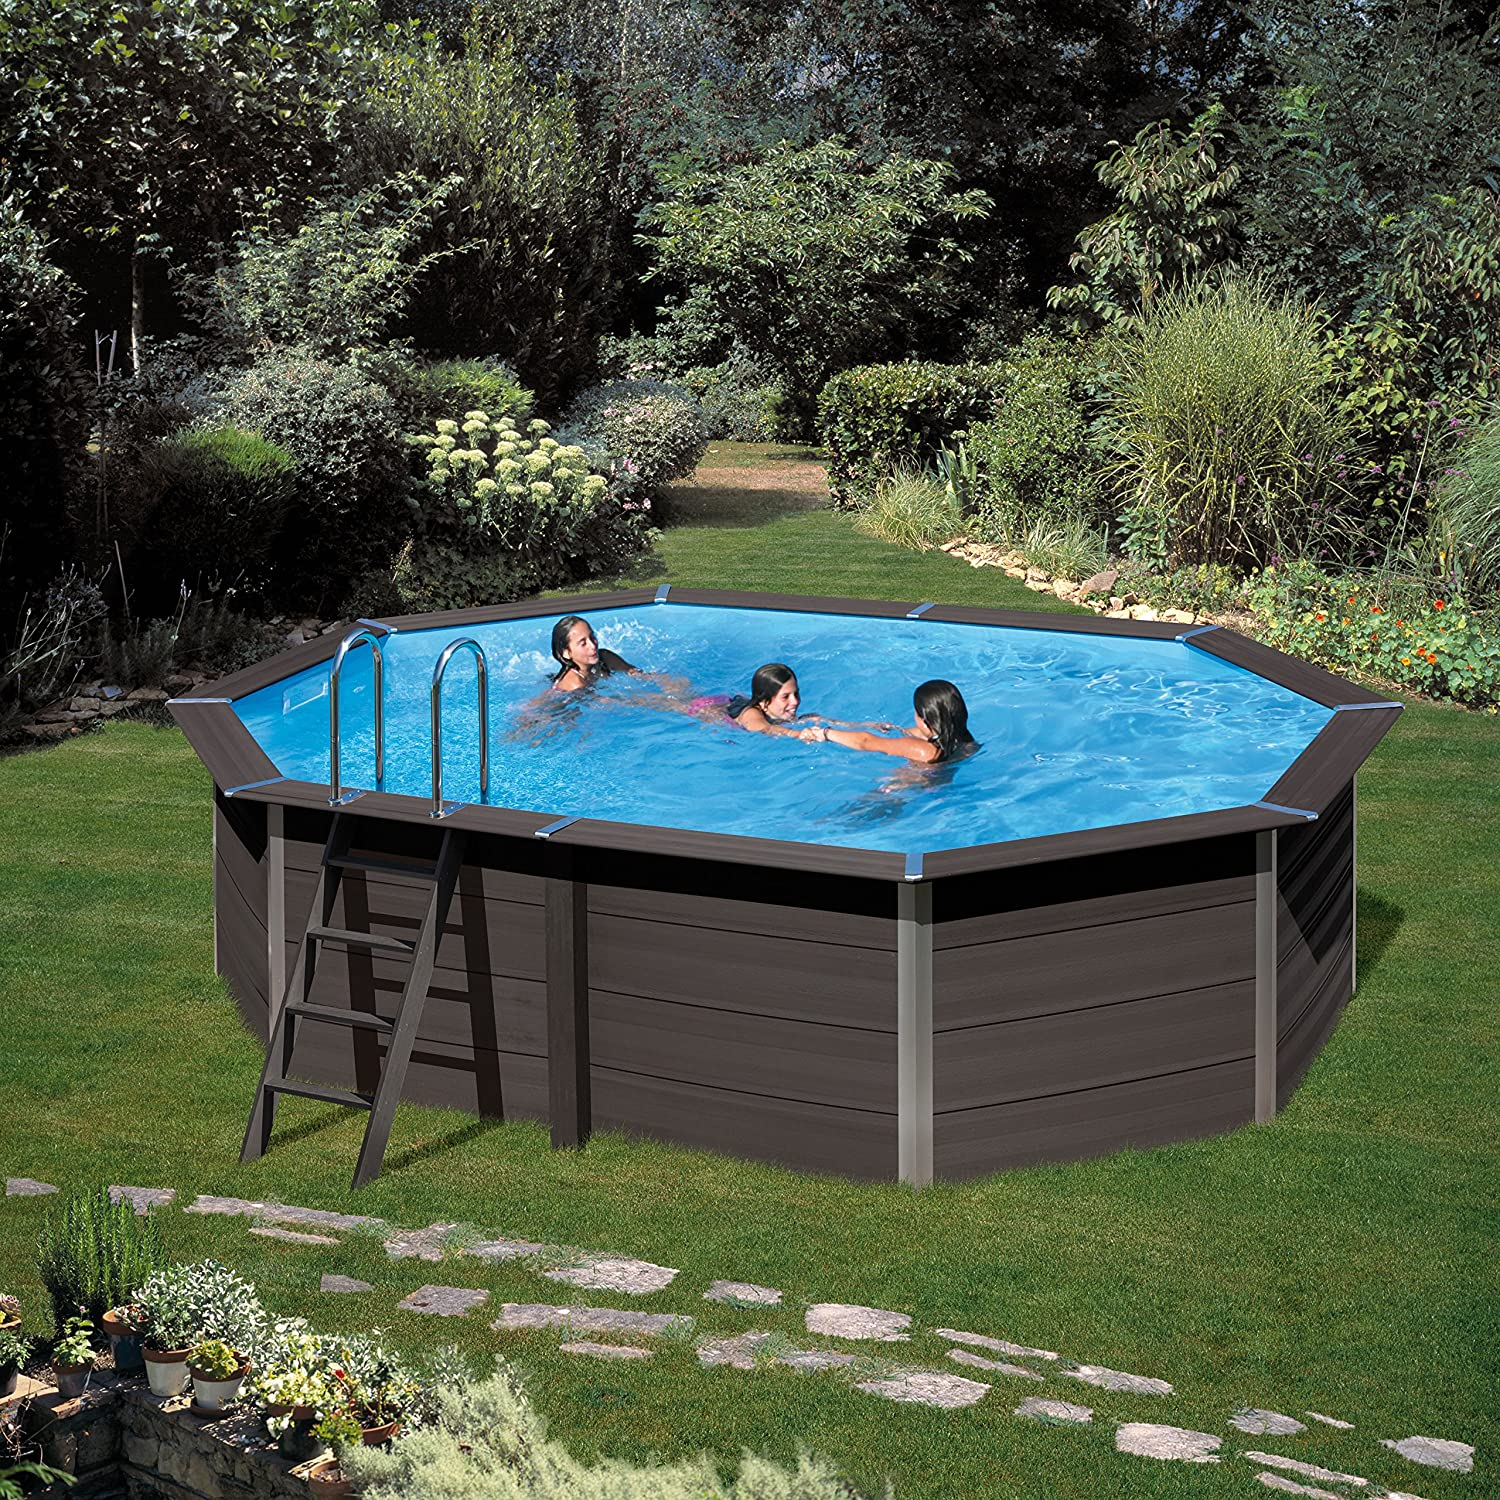 Gre kpcov66 Framed Pool Blue, Brown Above Ground Pool - Piscina Sobre Suelo (Framed Pool, Blue, Brown, 4000 l/h, 125 W, 38 cm, Sand Filter): Amazon.es: ...